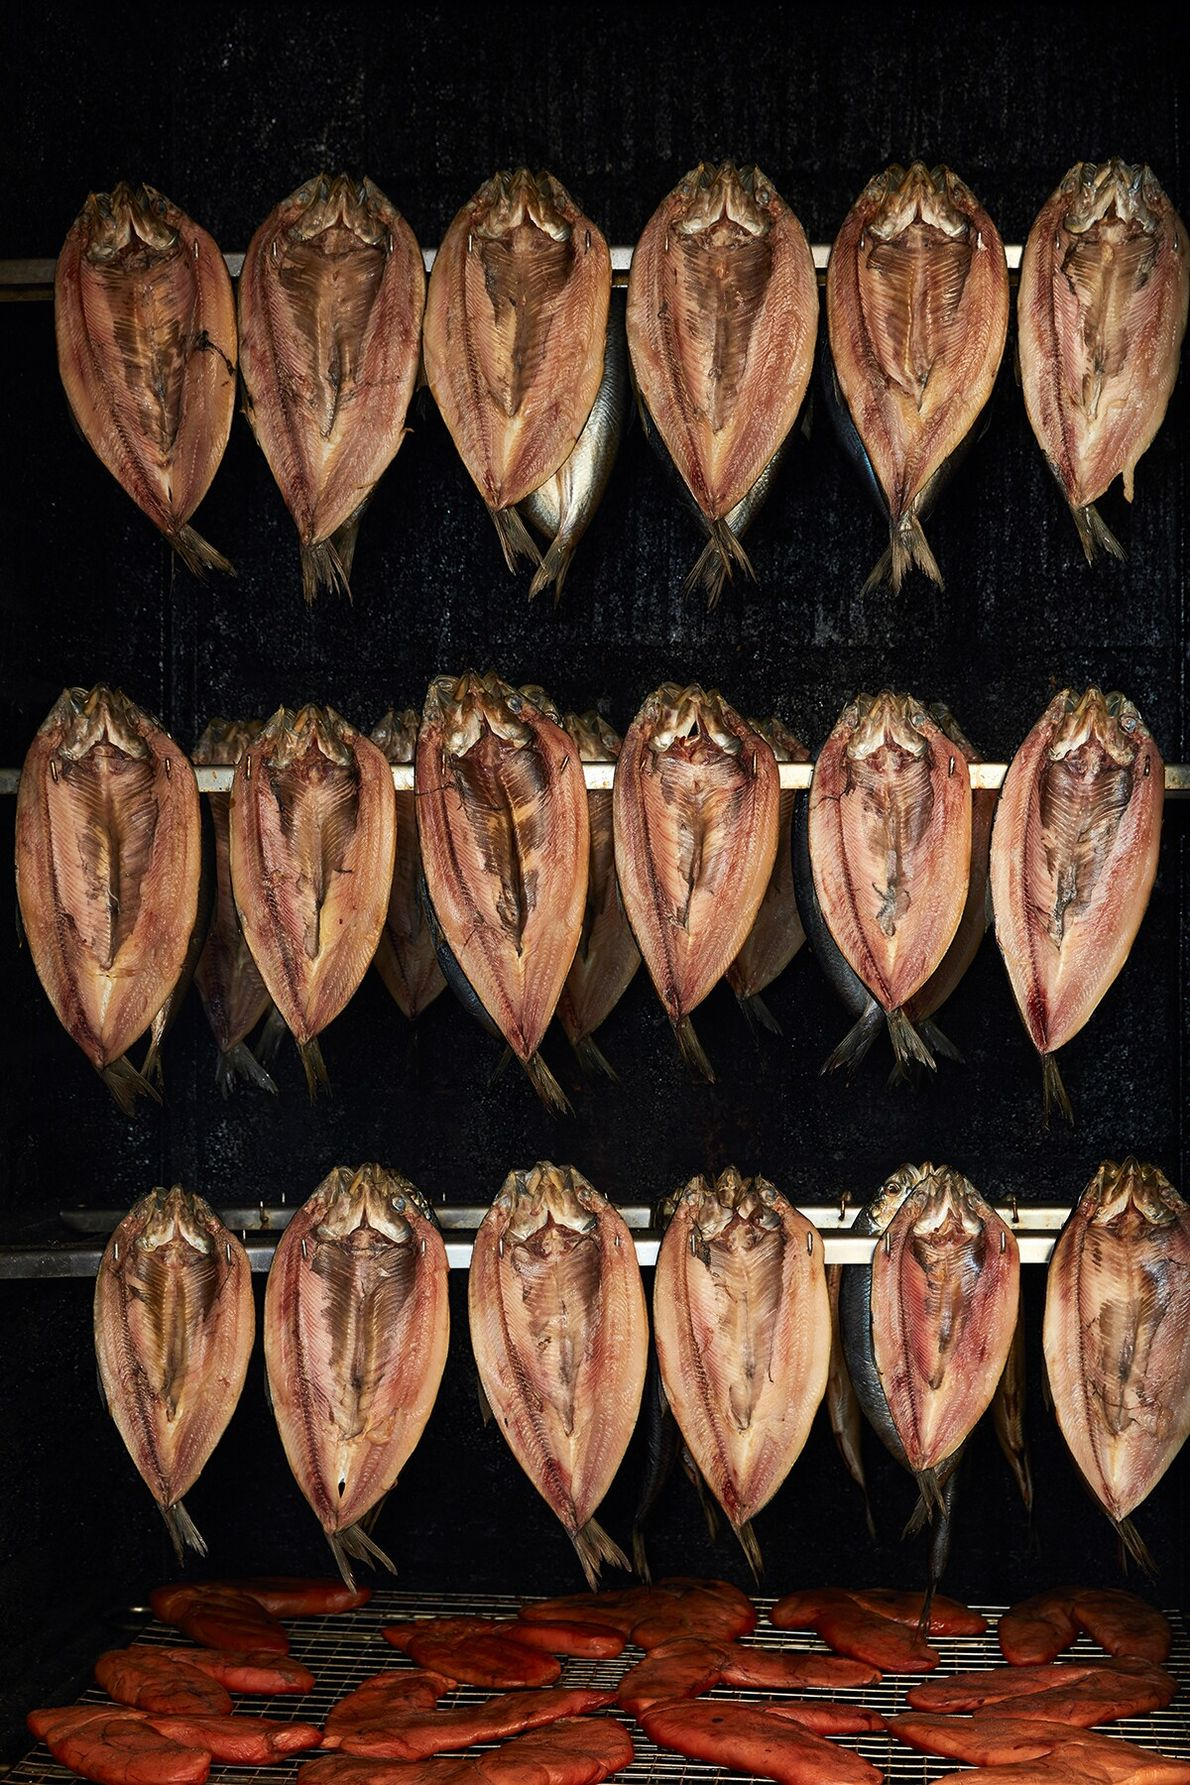 Kippers hanging in the smoker at the Cley Smokehouse. The pungent fish is a signature product ...